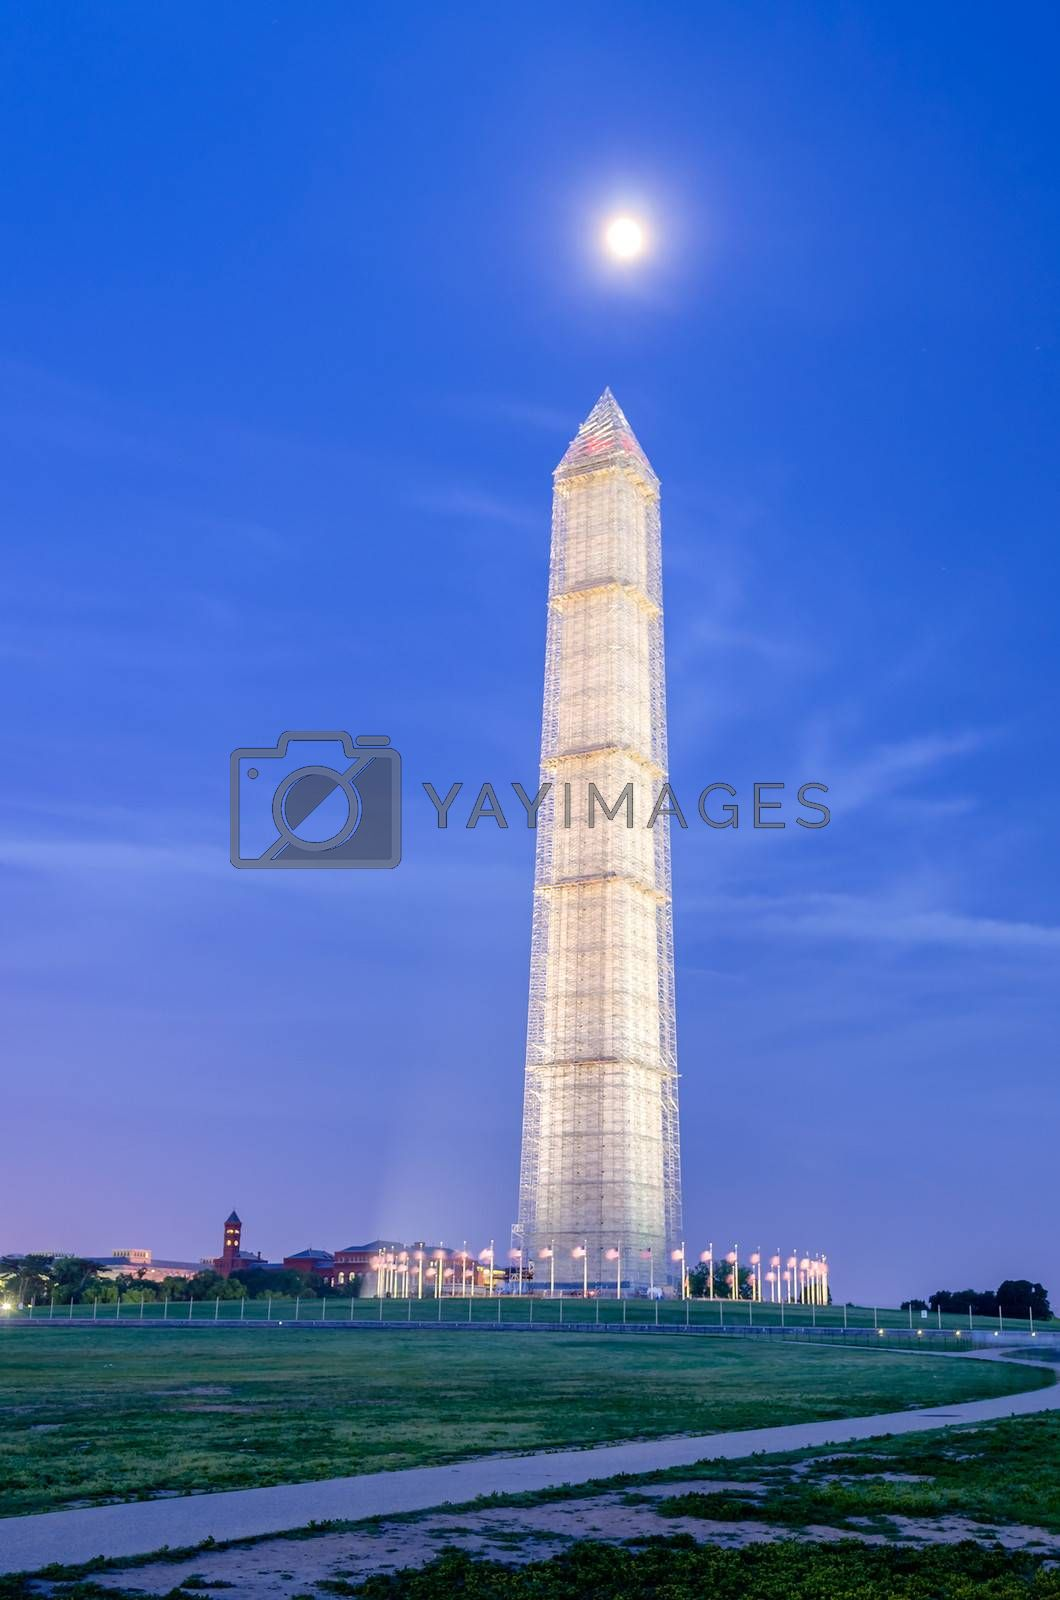 The Washington Memorial in Washington DC at Night against a scenic blue sky